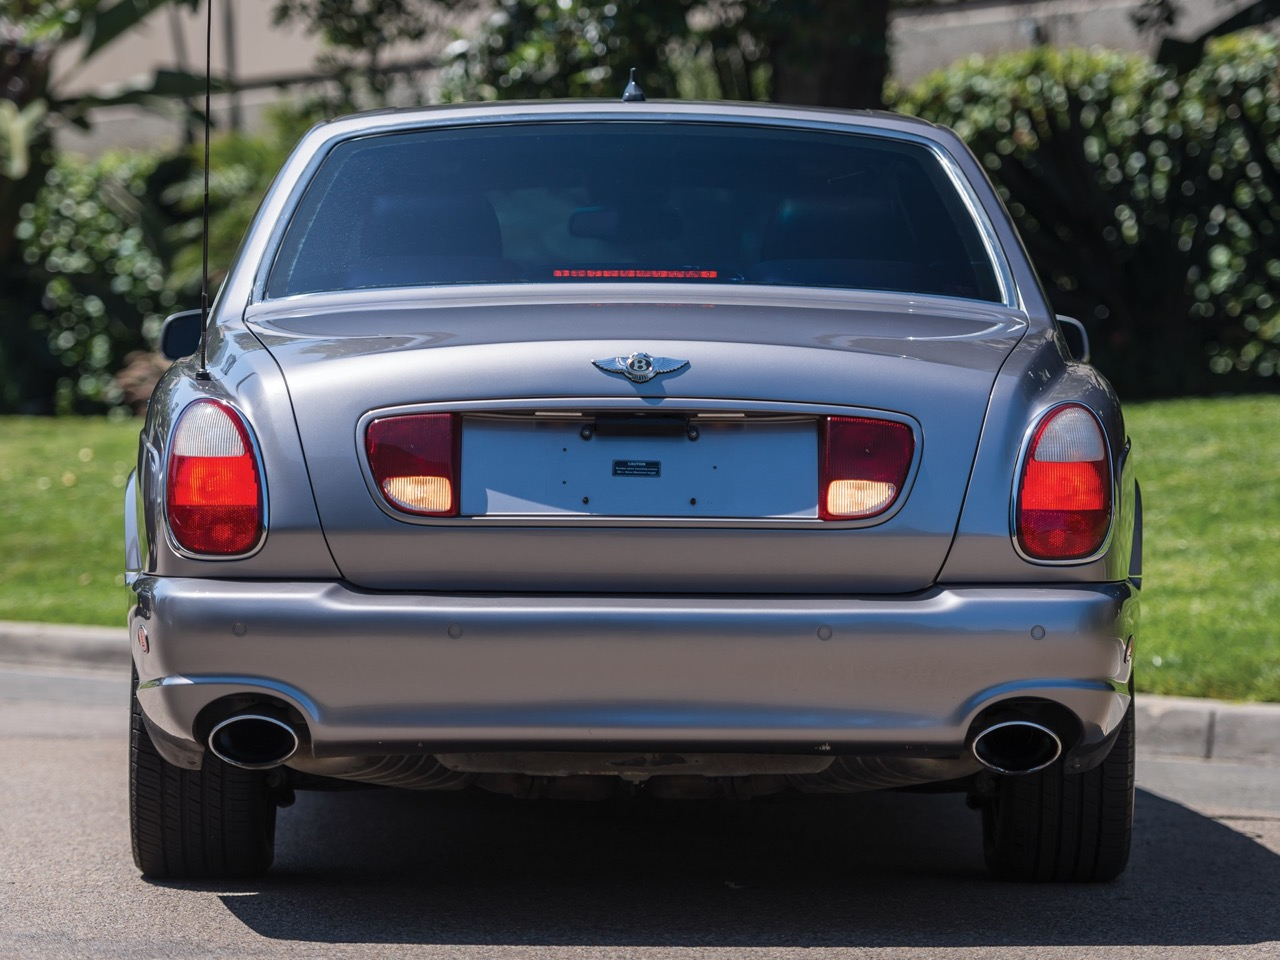 2003 Bentley Arnage T... Nickelle pour la retraite ! 5